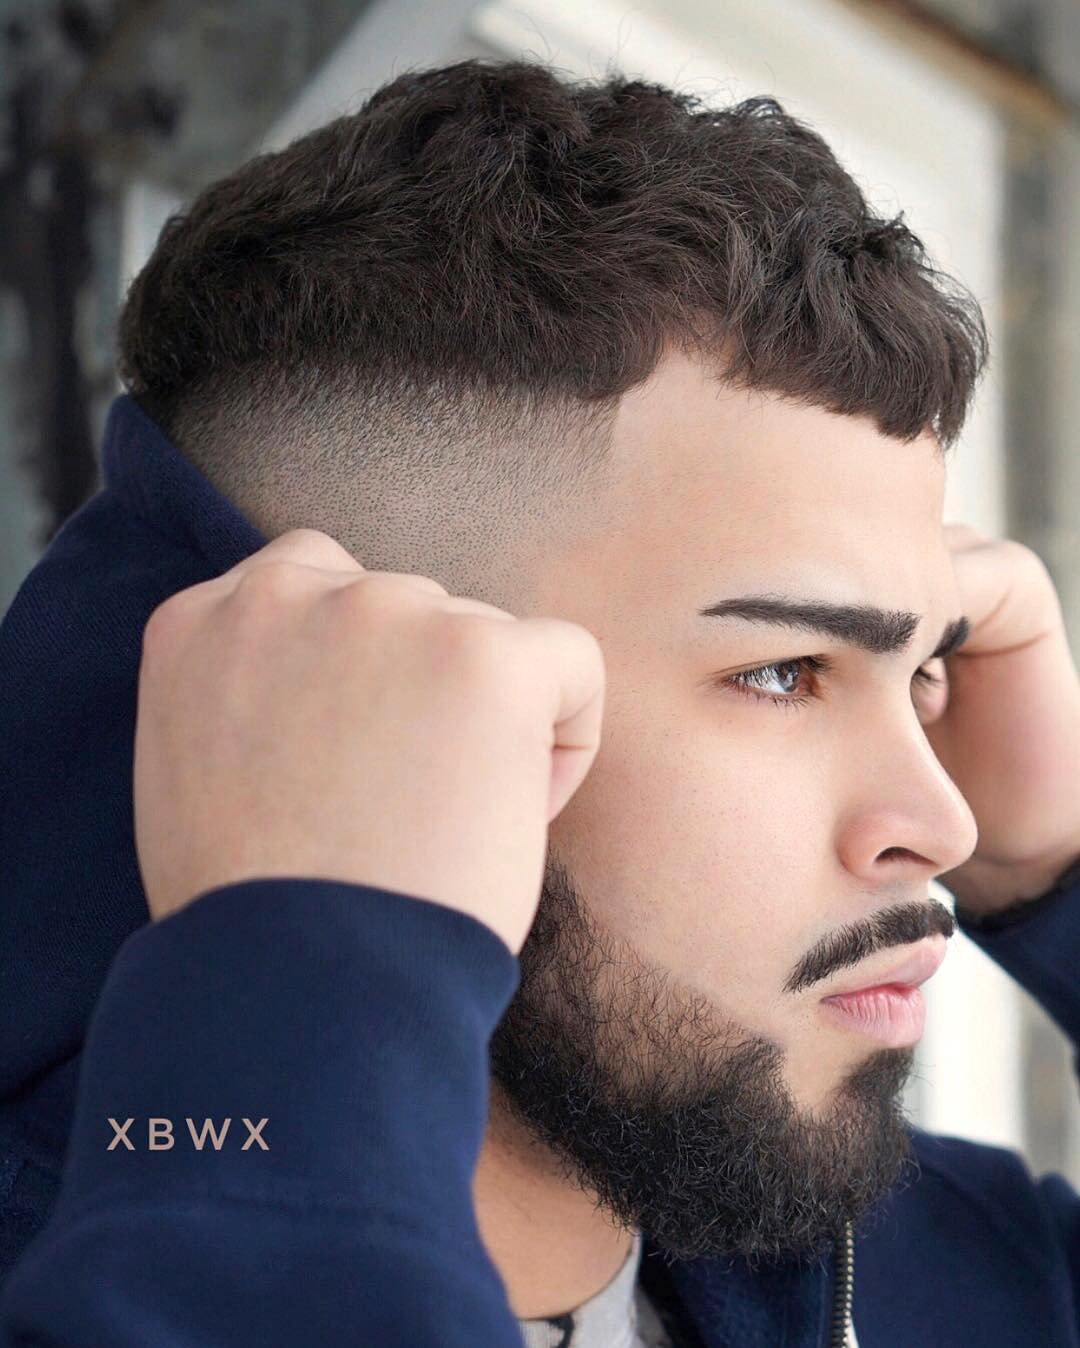 Cool Short Haircuts For Boys  25 Best Short Haircuts For Men Cool 2020 Styles